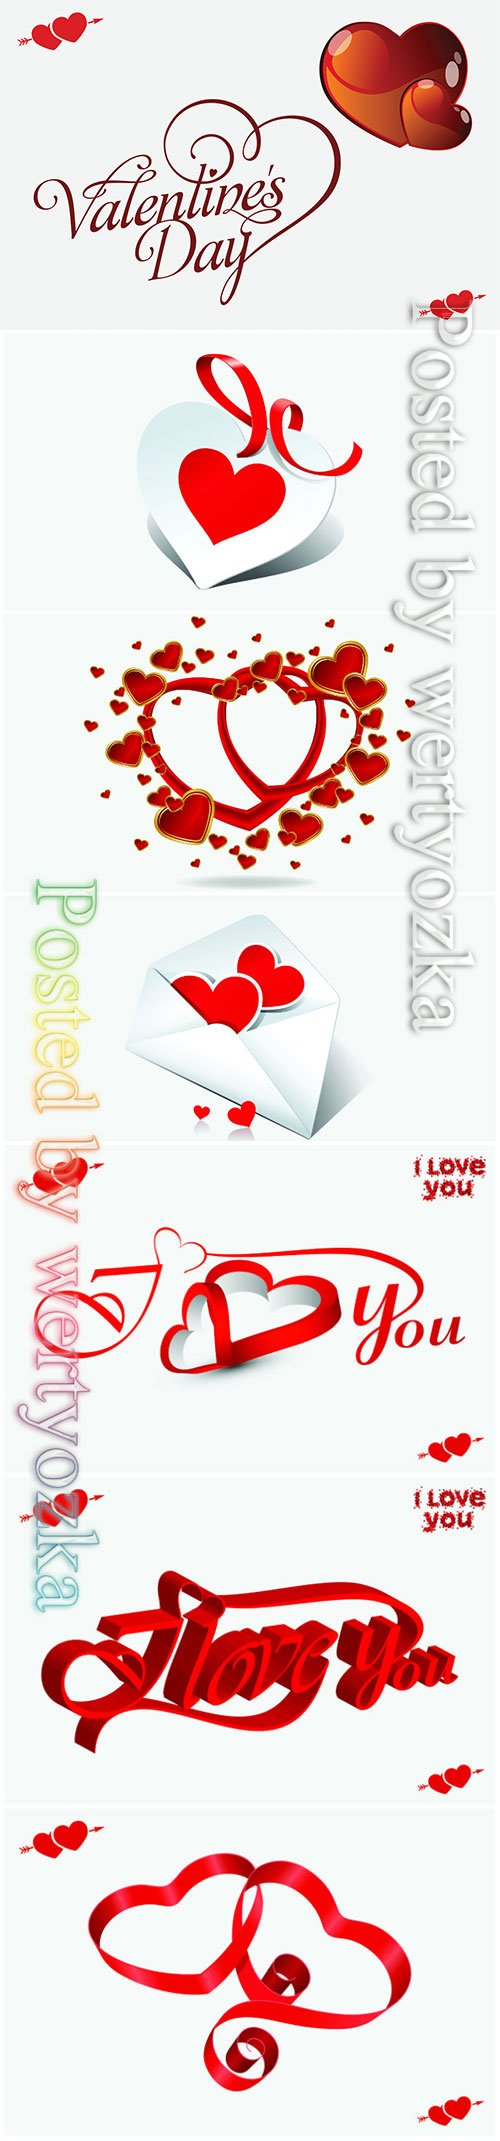 Valentines day vector background with heart # 2